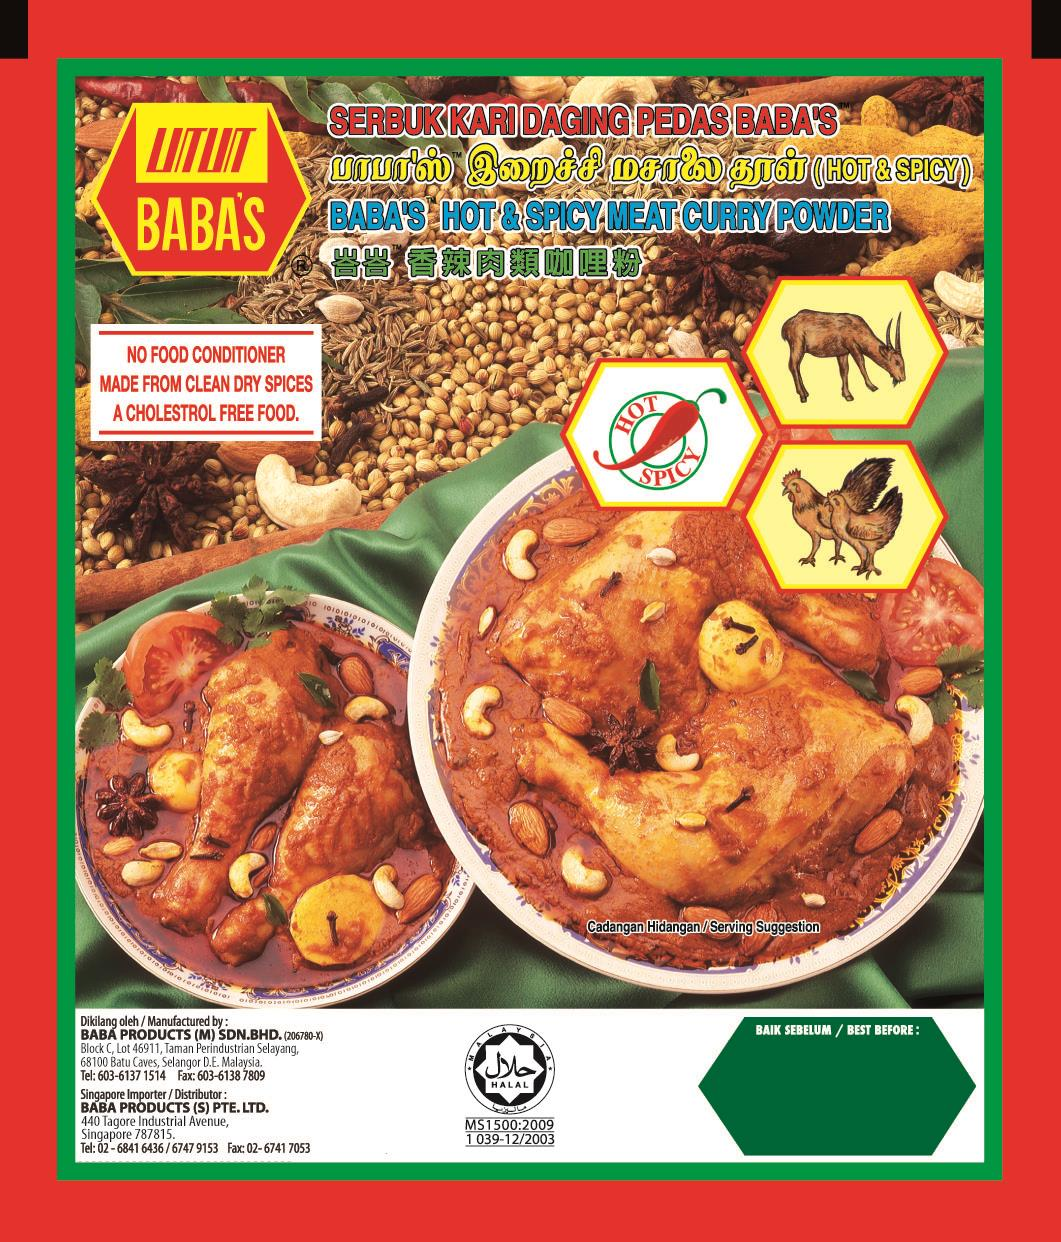 Baba's Meat Curry Powder Hot & Spicy 250g from Buy Asian Food 4U